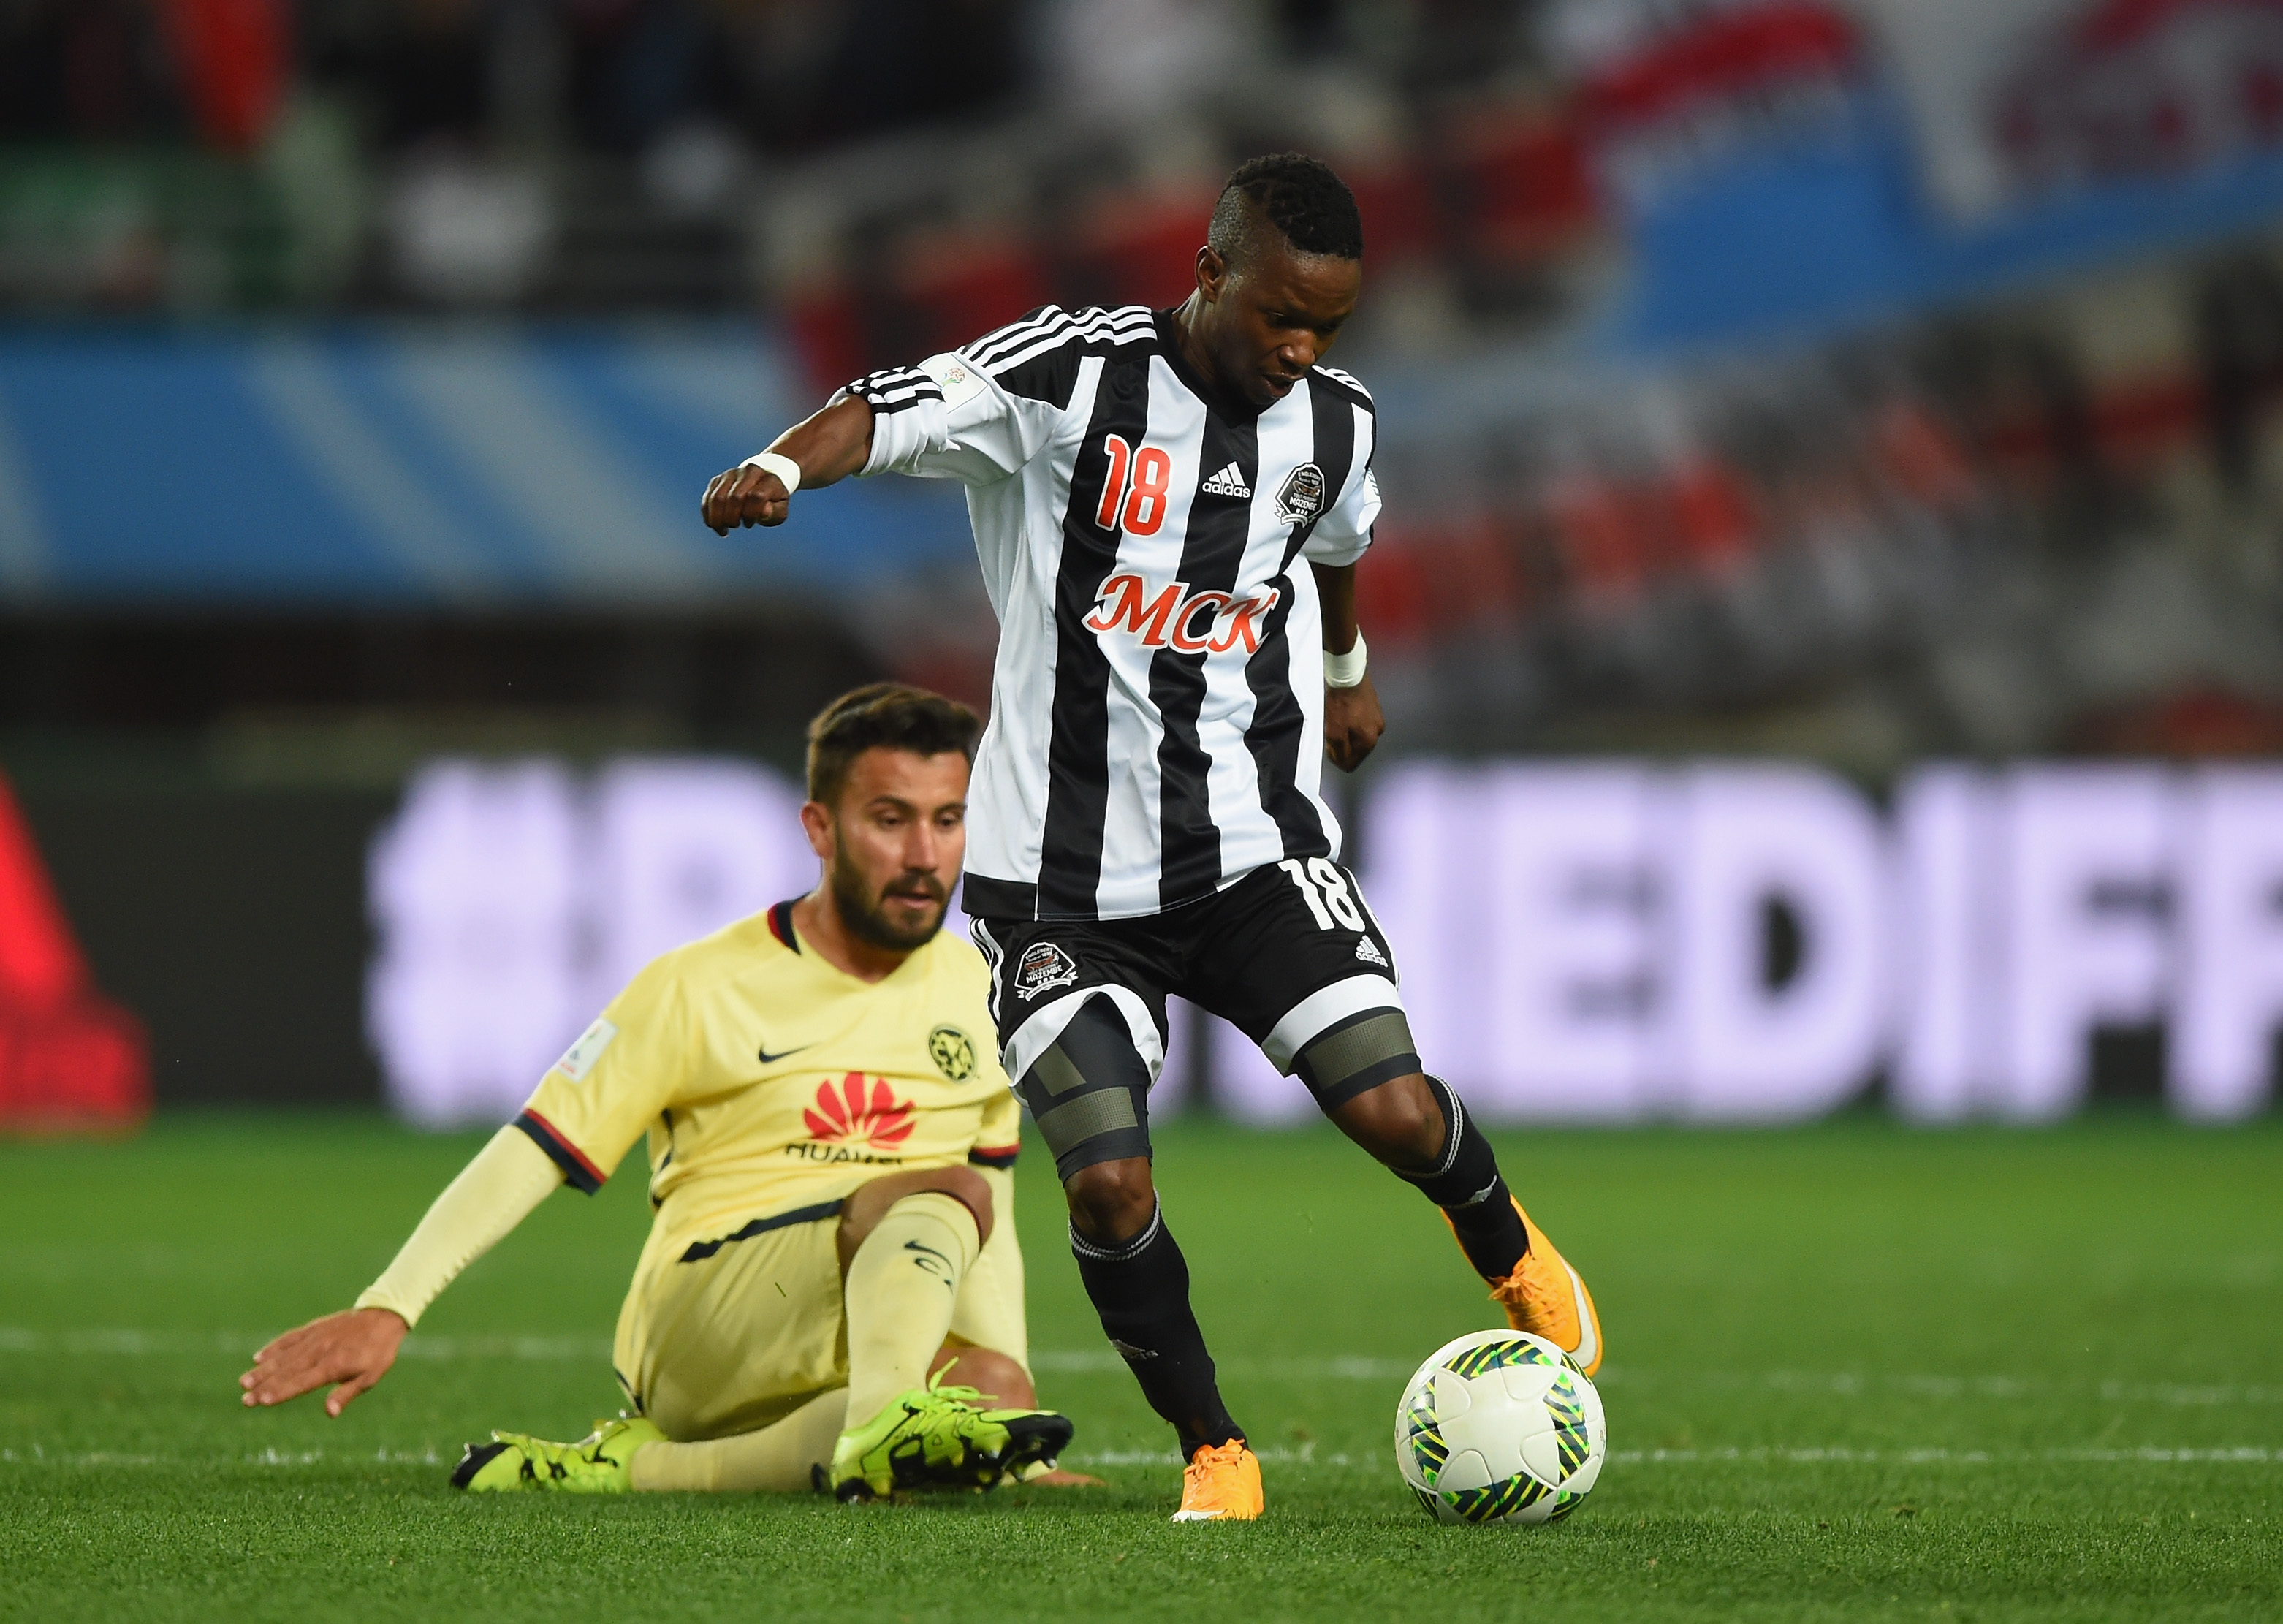 EXCLUSIVE: TP Mazembe captain Rainford Kalaba ruled out in CAF Champions League game against Zamalek